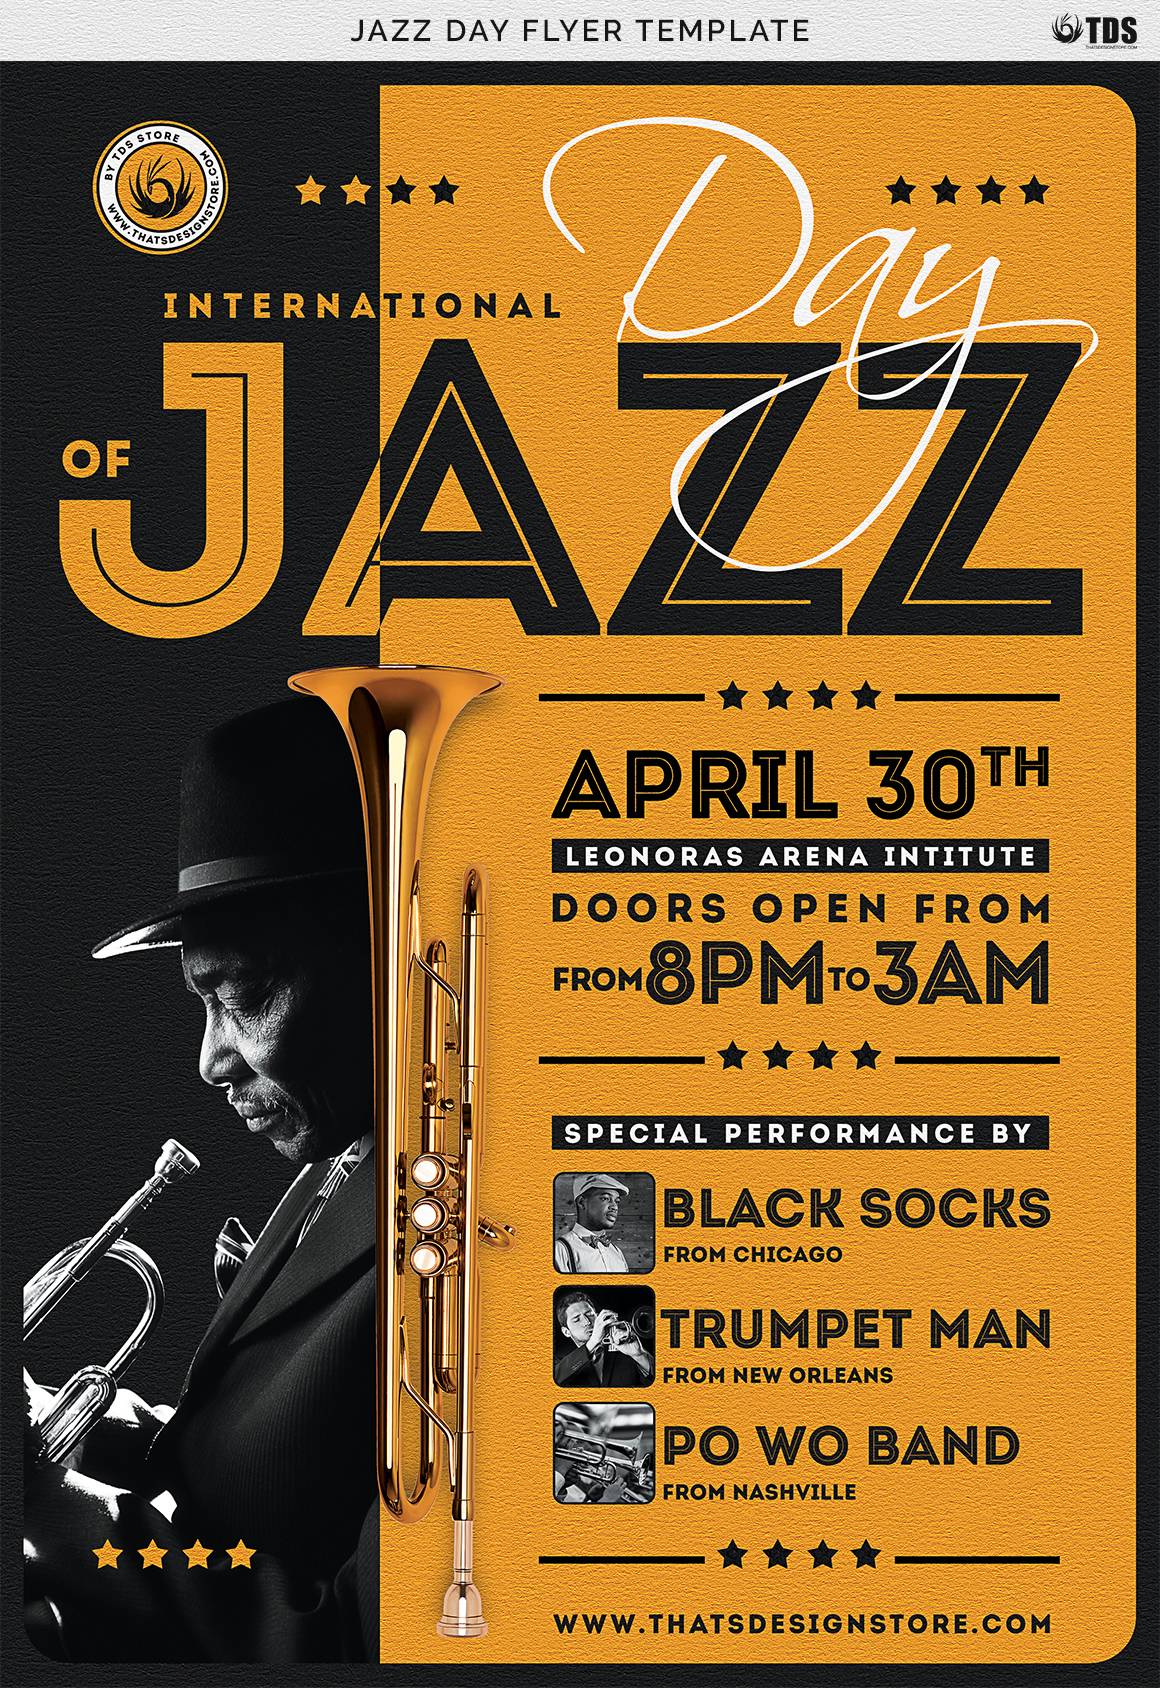 Jazz Day Flyer Template V1 example image 7